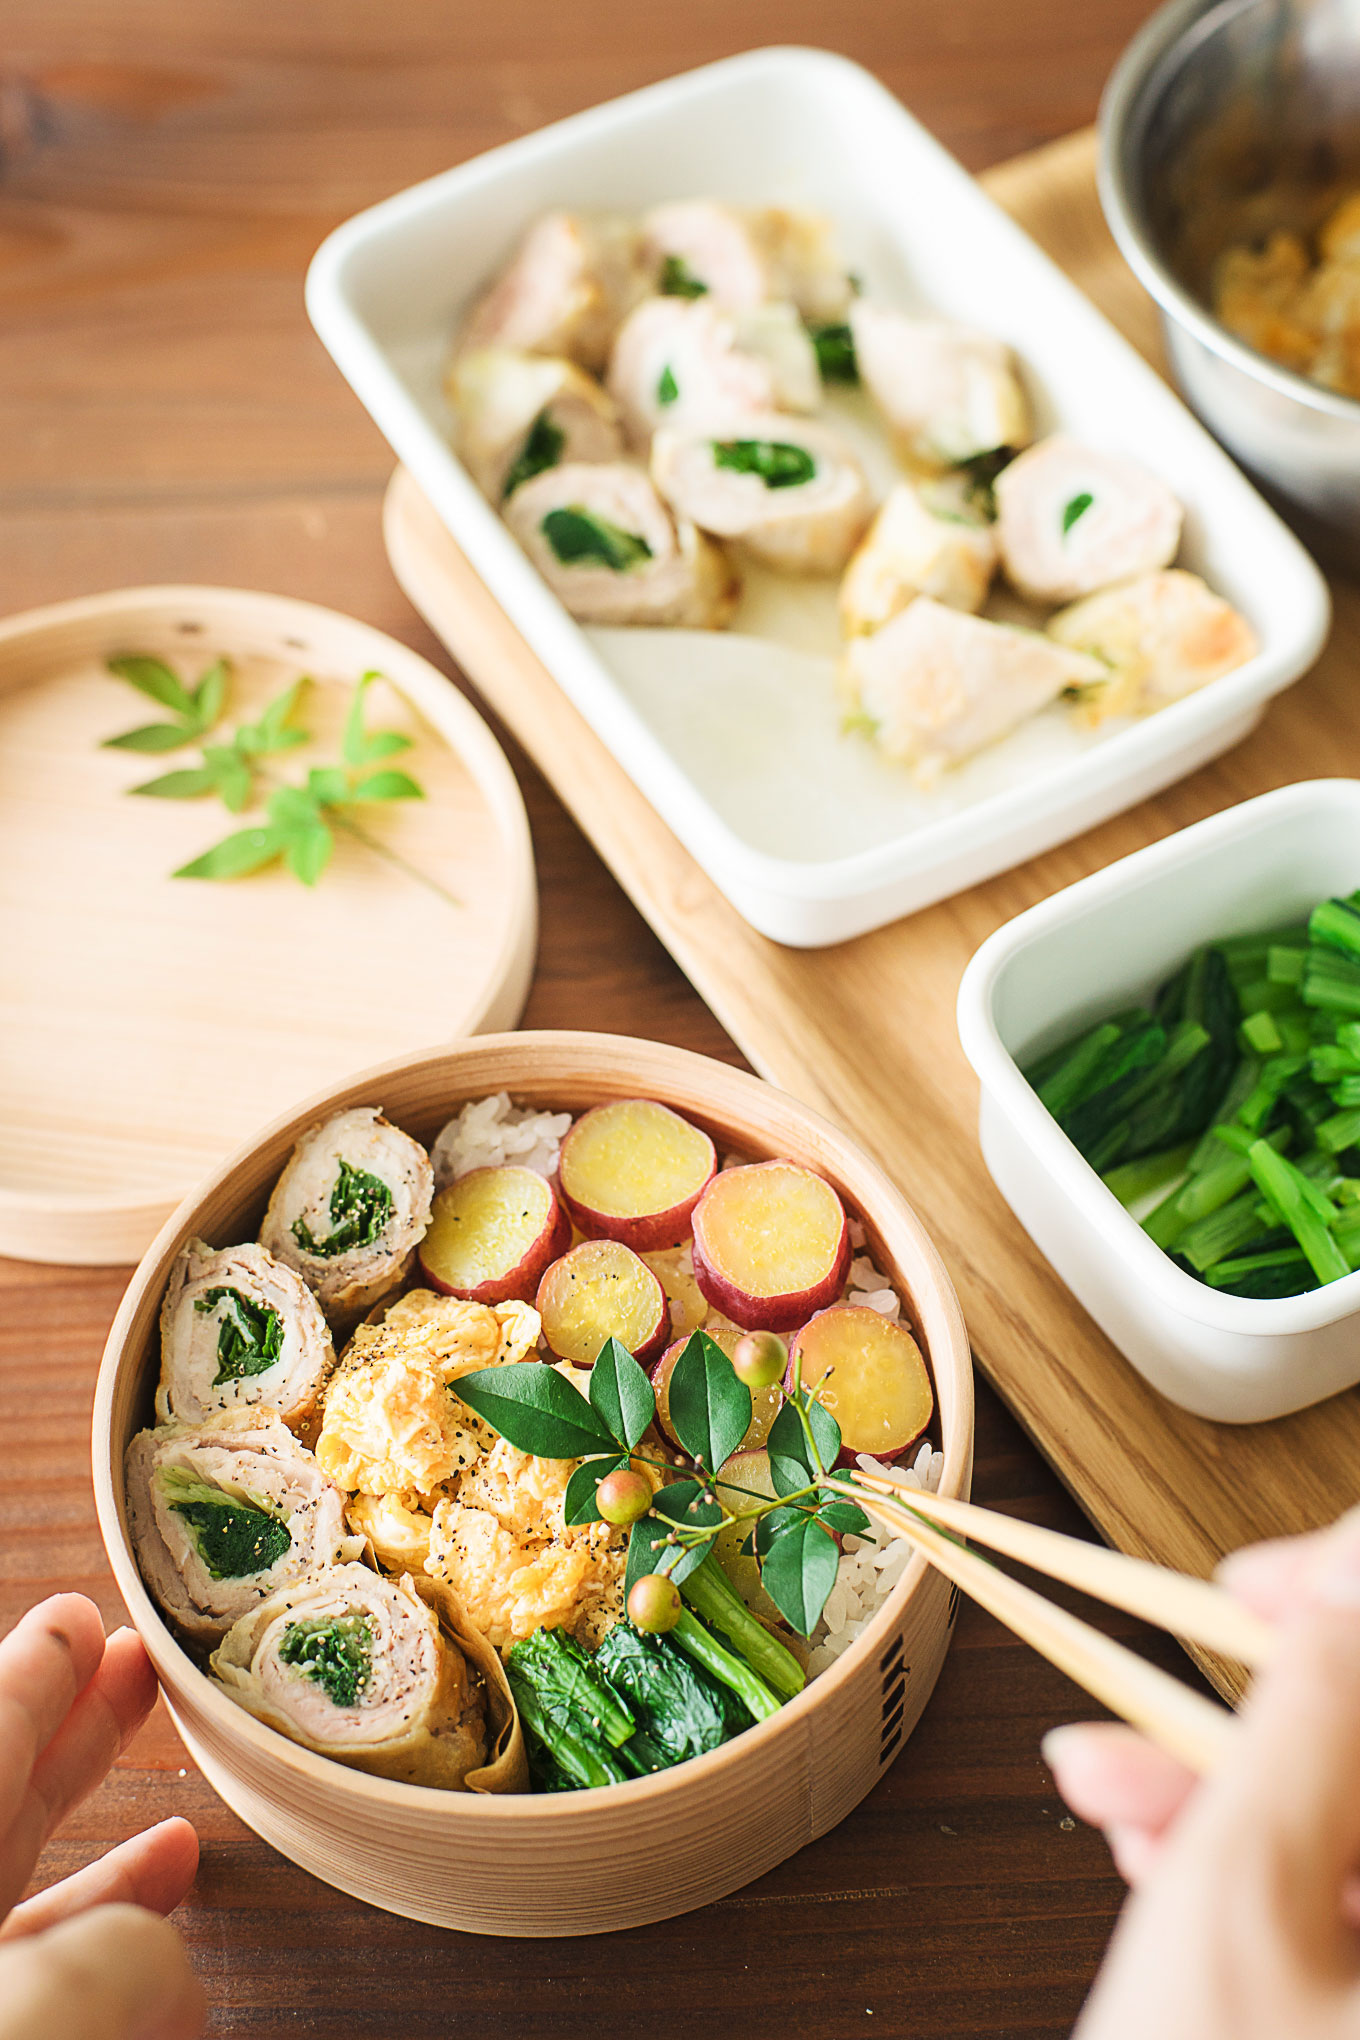 pork-and-vegetable-rolls-magewappa-bento-12